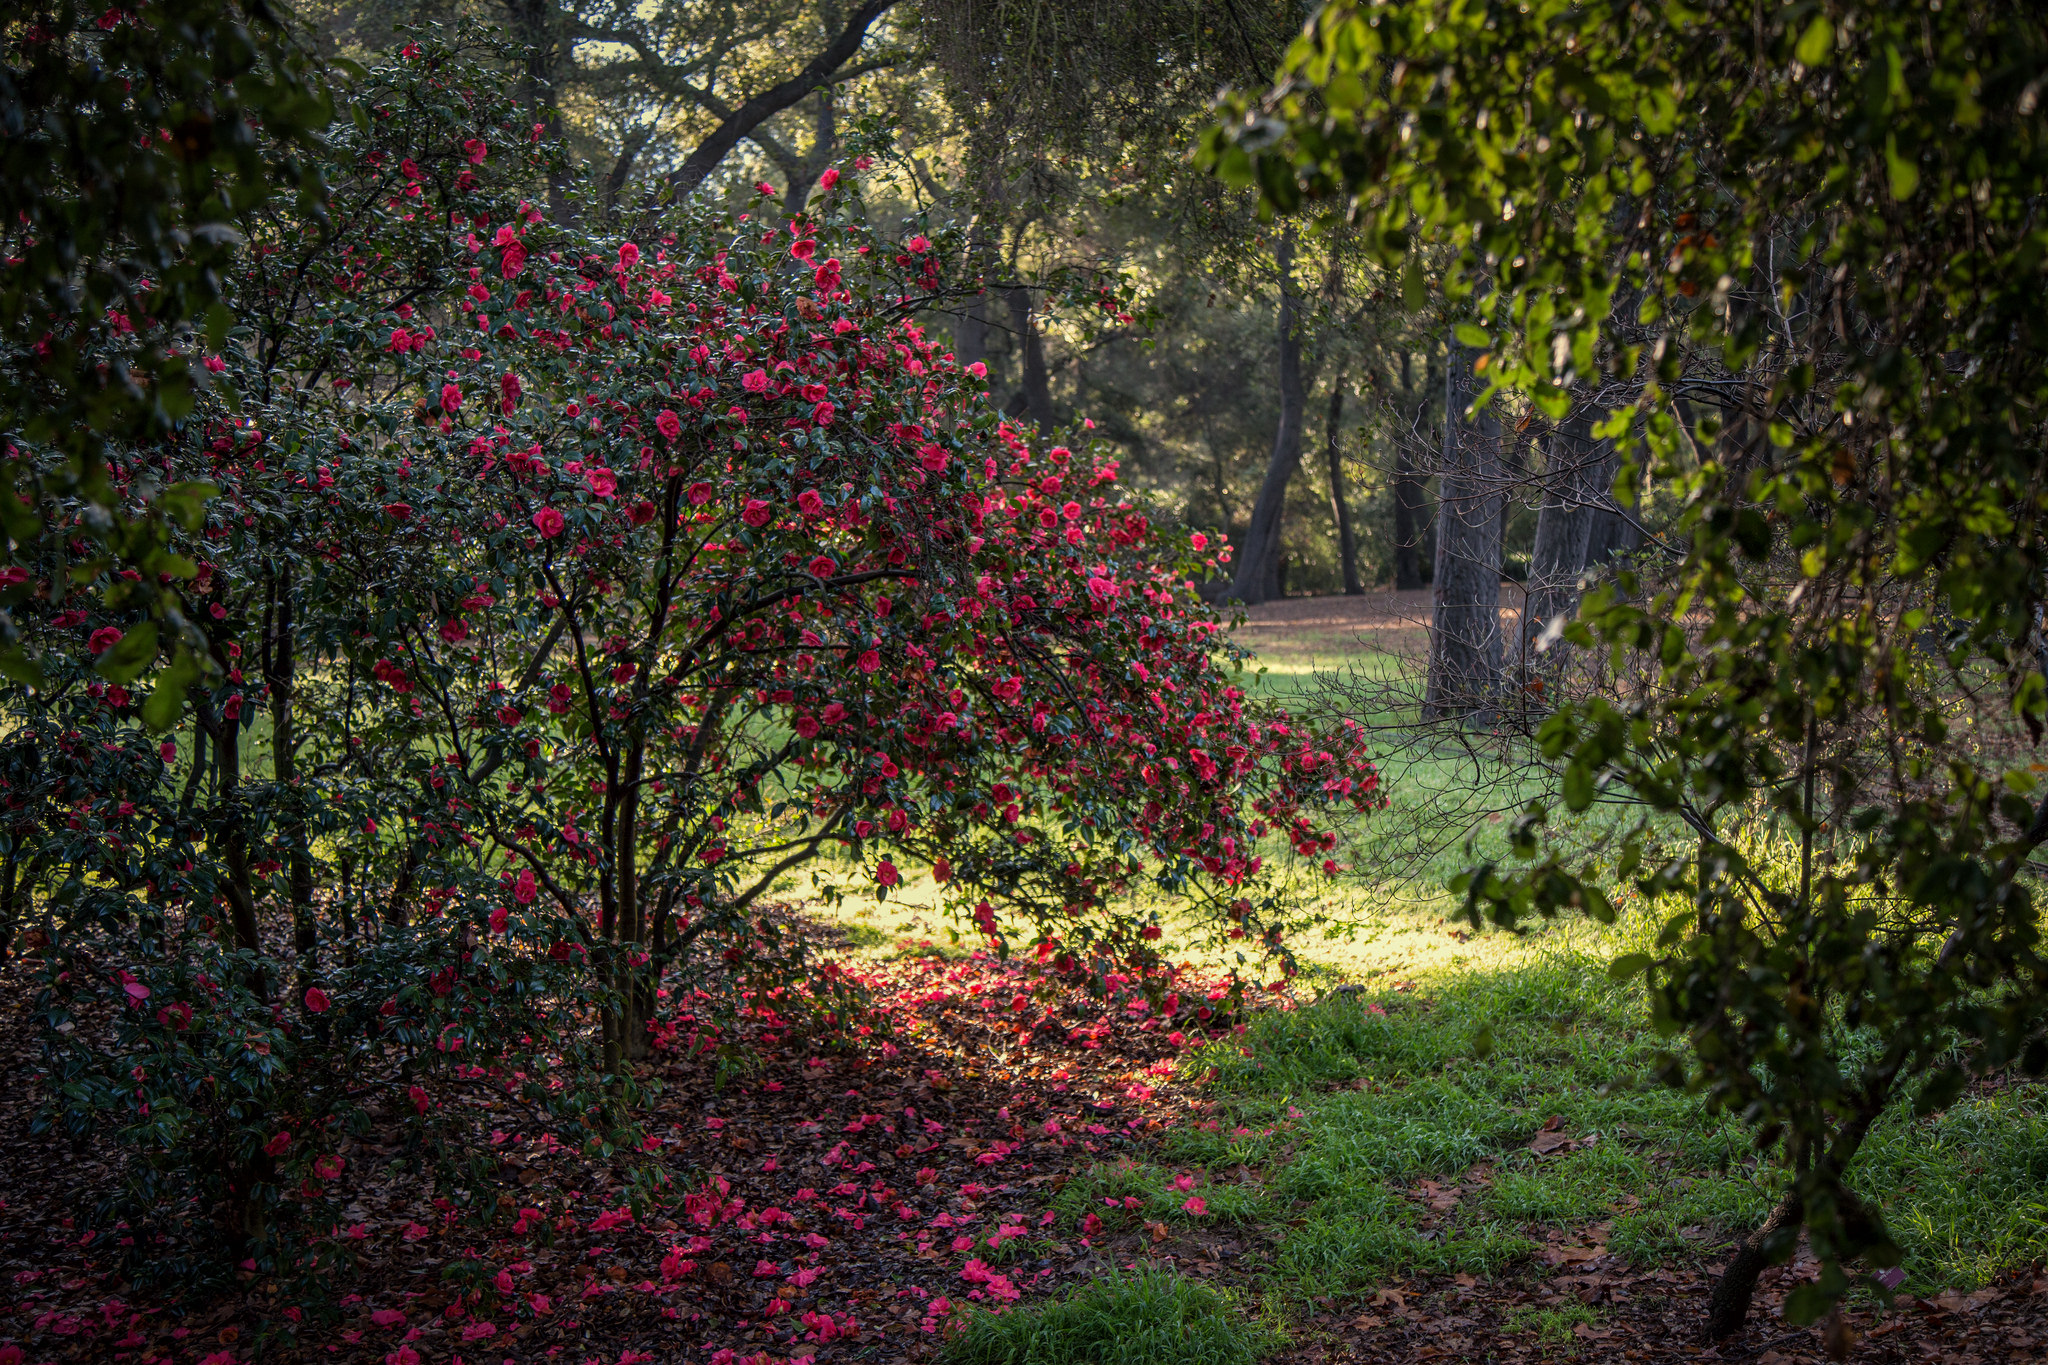 Beautiful camellia with oaks and sunlight on the grass.